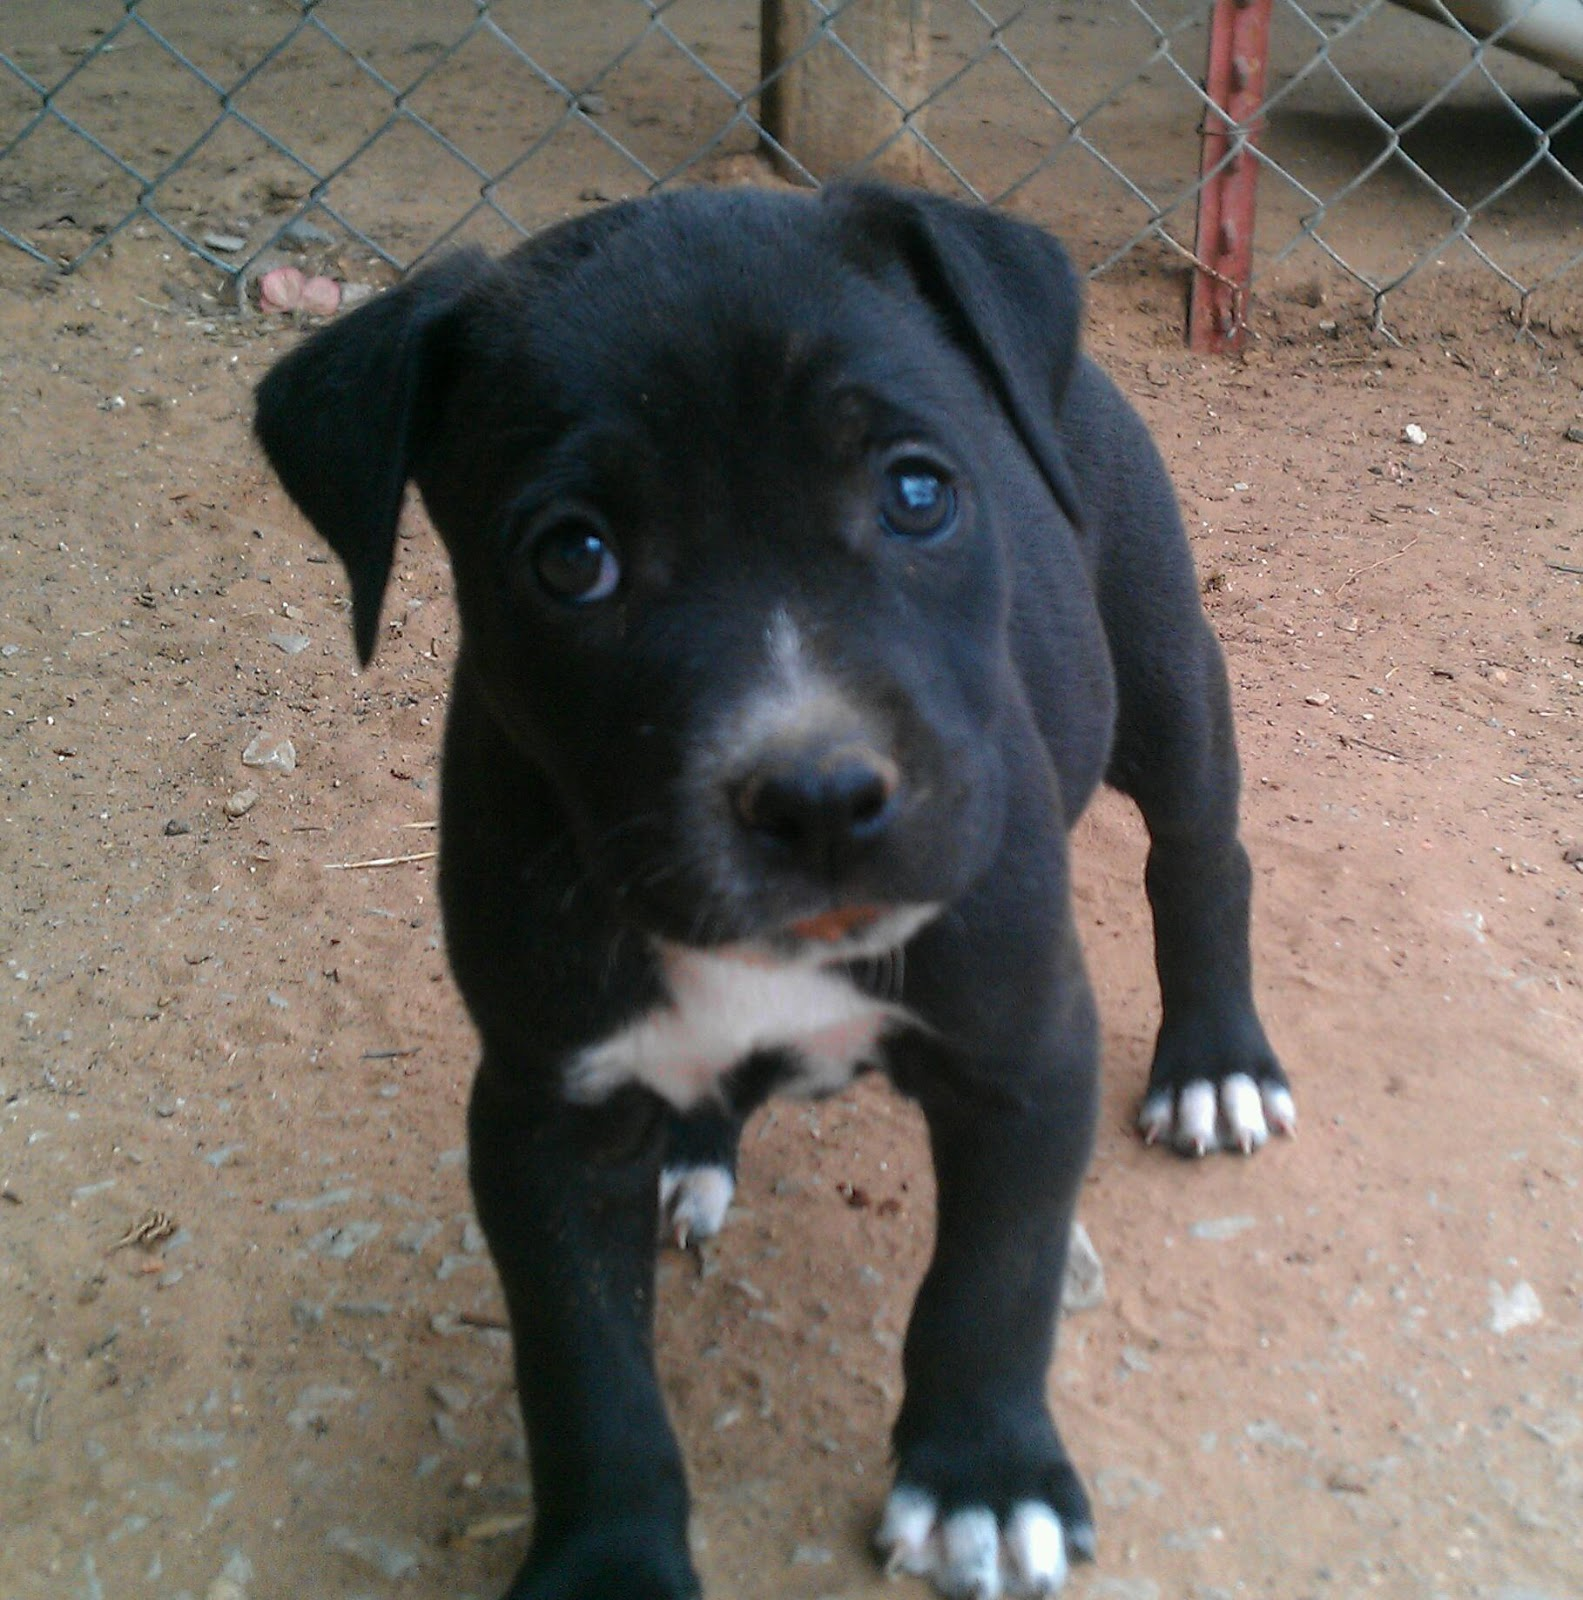 Cute Puppy Dogs Black And White Pitbull Puppies